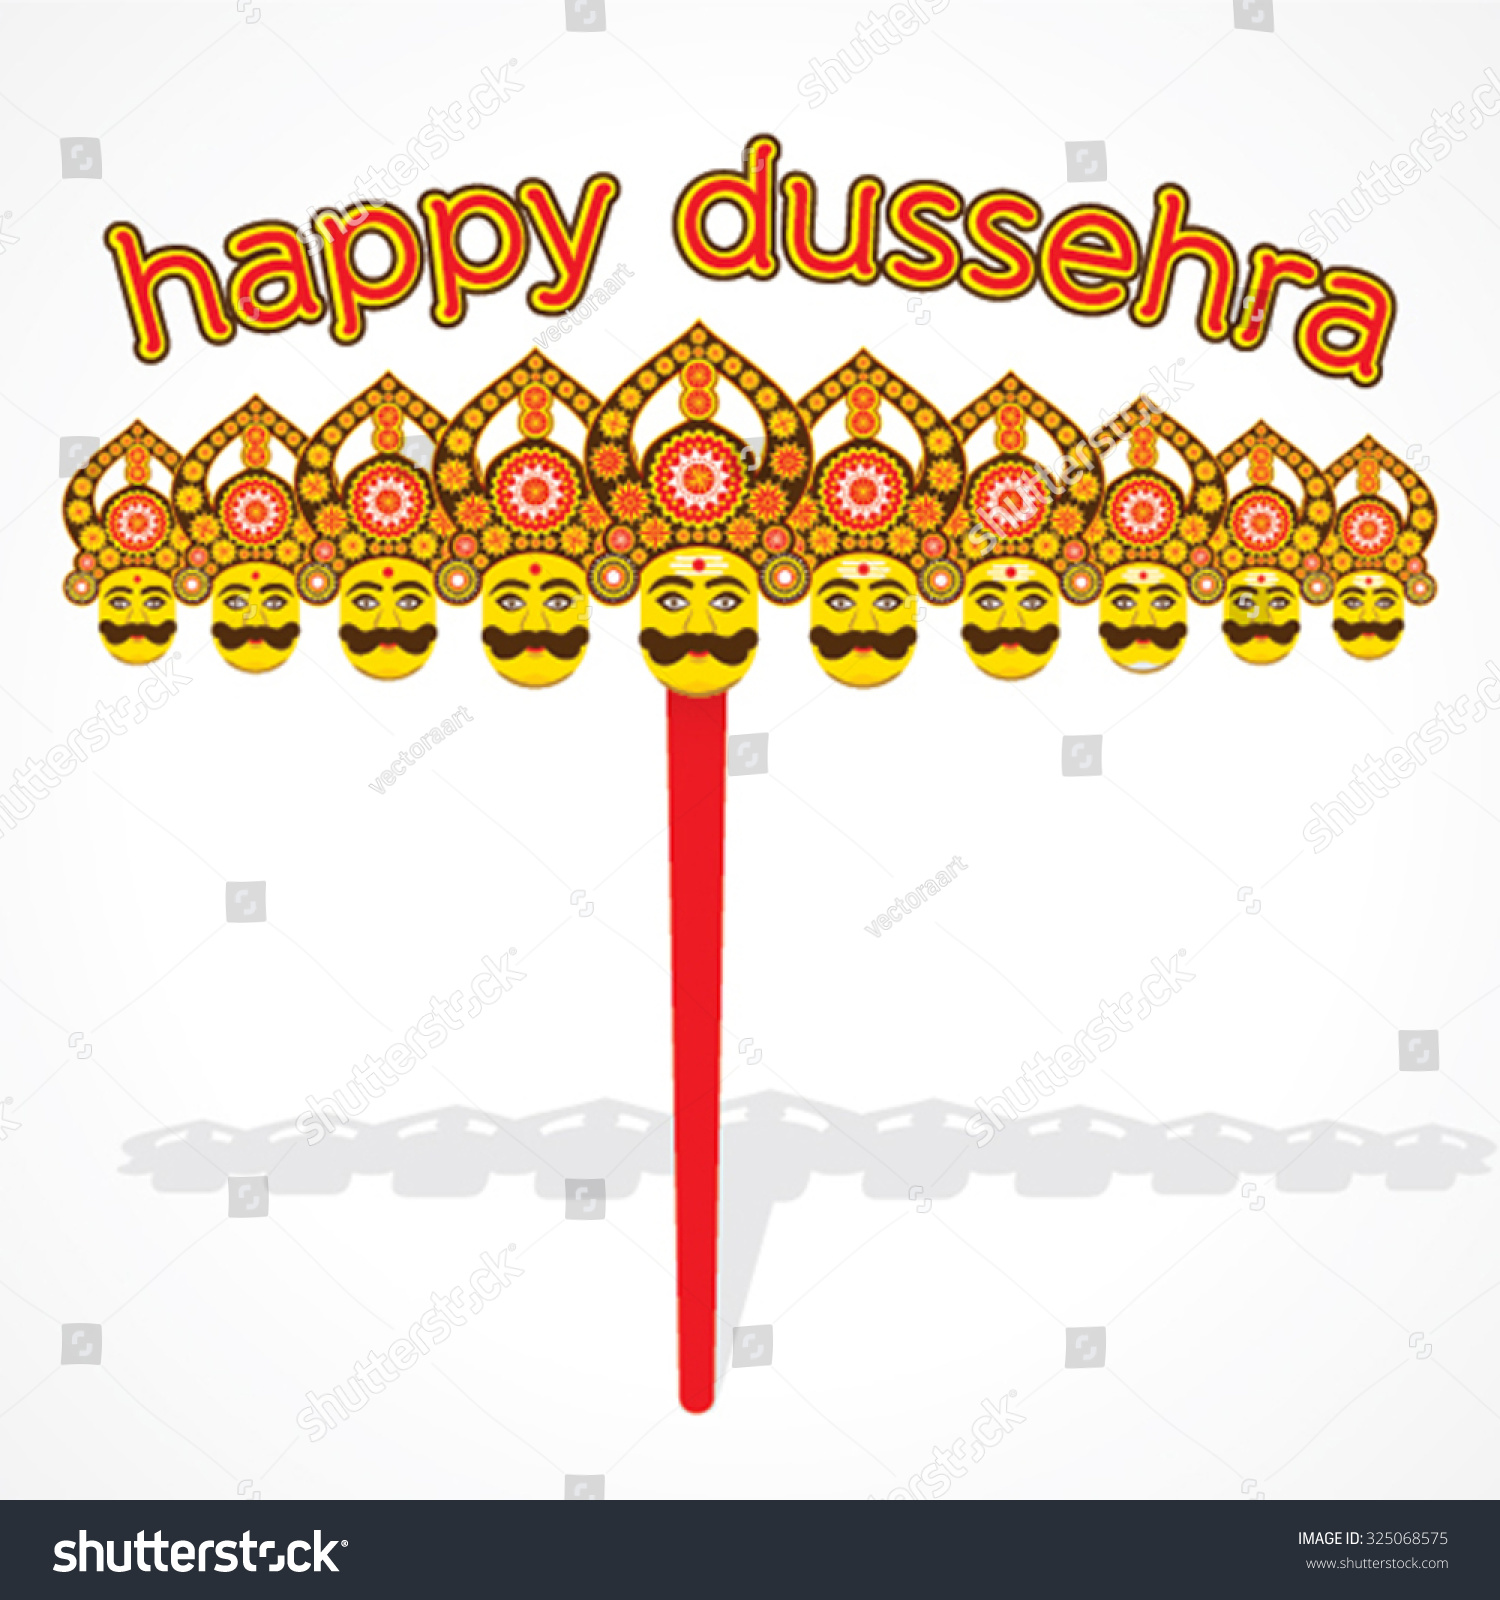 Happy dussehra festival greeting card poster stock vector 325068575 happy dussehra festival greeting card poster stock vector 325068575 shutterstock m4hsunfo